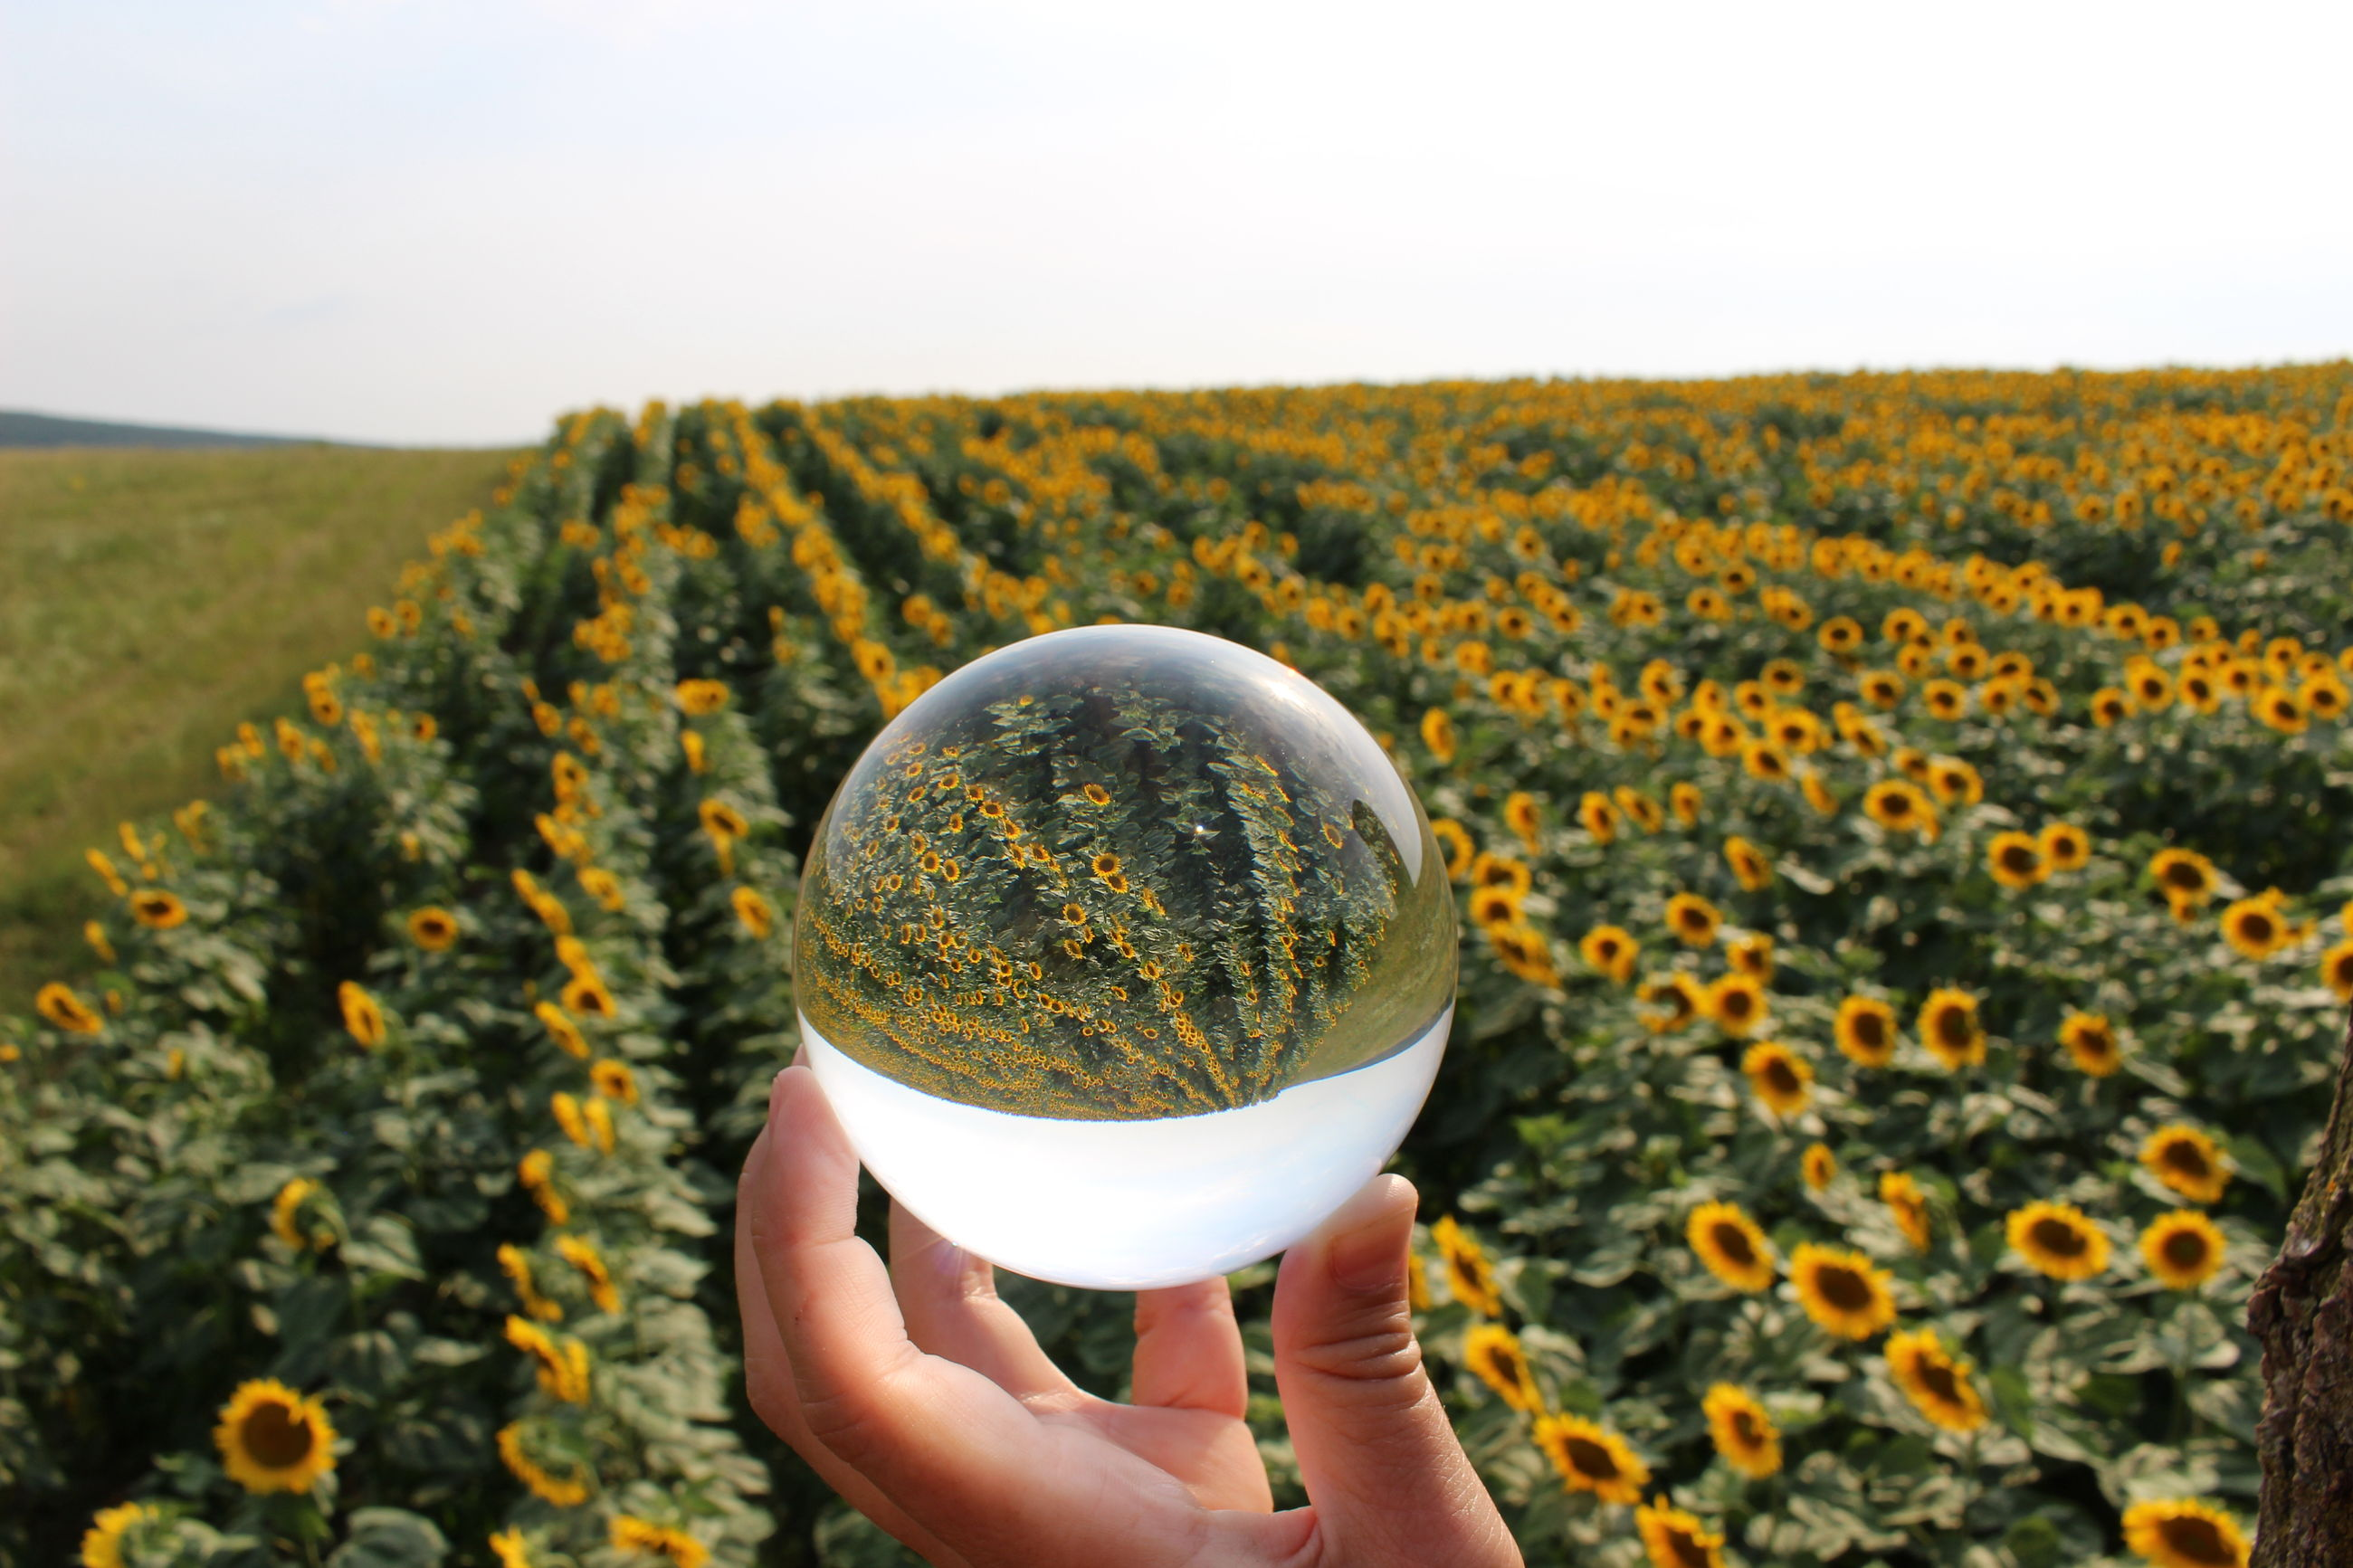 Midsection of person holding lensball over the sunflowers.